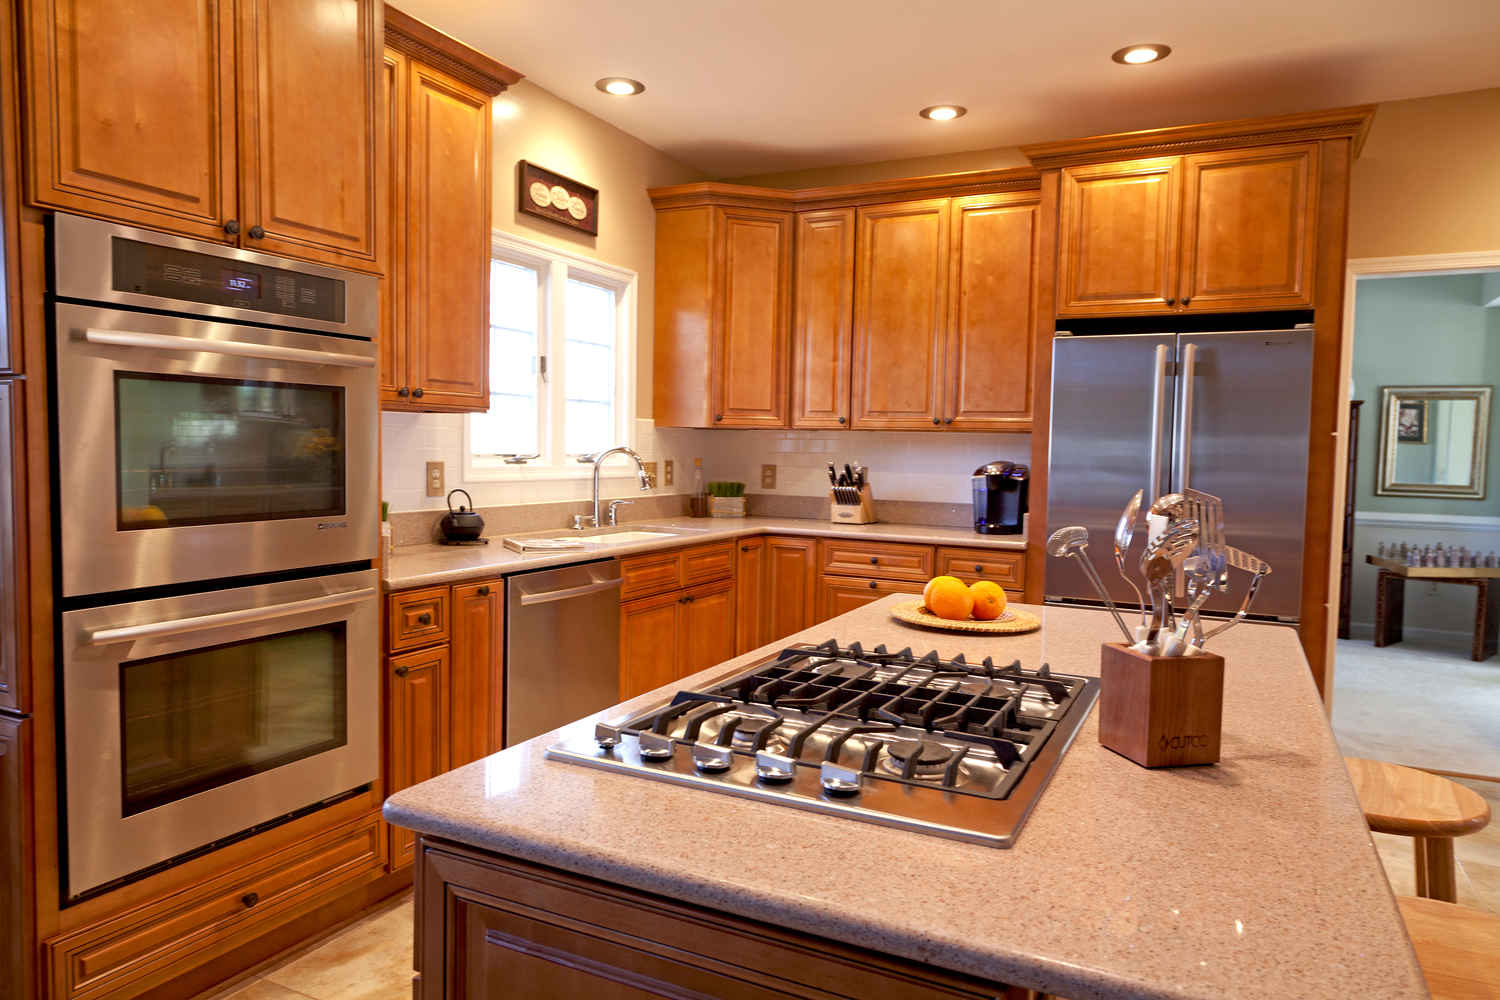 kitchen remodeling northern virginia kitchen remodeling northern virginia Clifton s Home Addition in Northern Virginia Kitchen remodeled by US Home Design Build